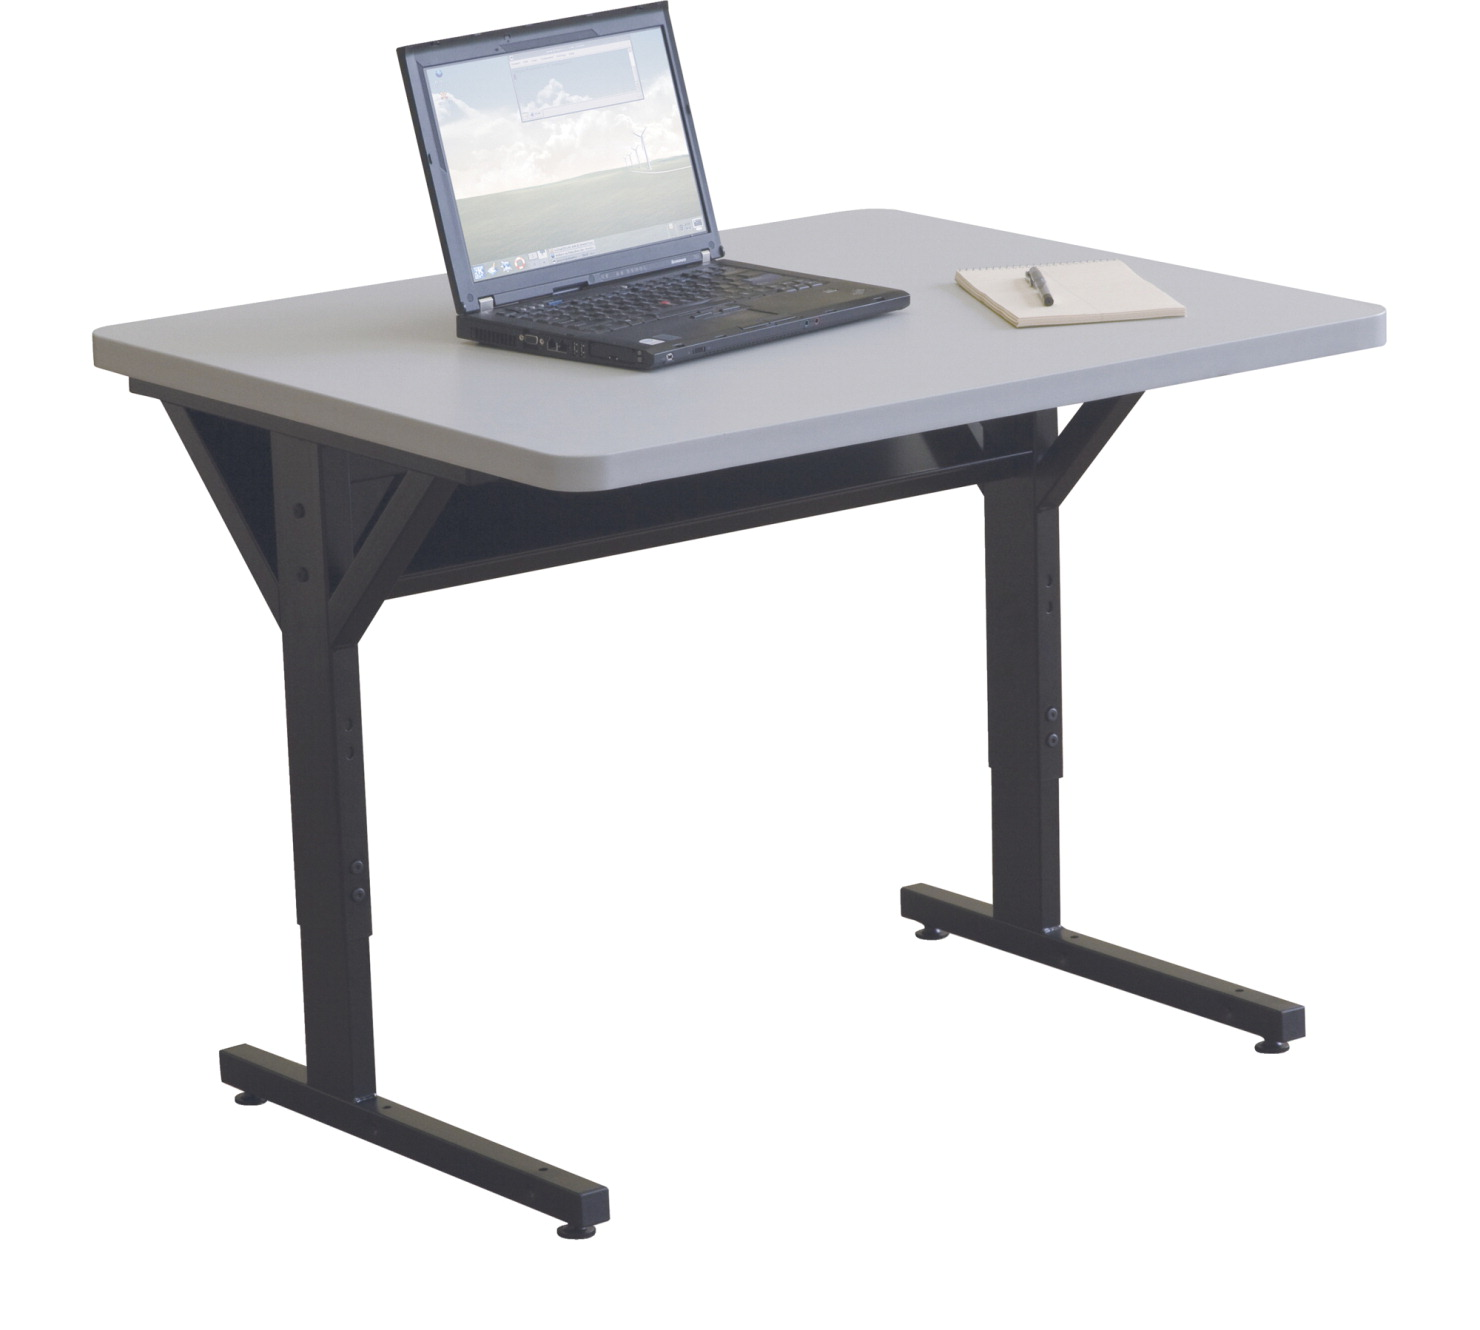 Classroom select y leg computer table 36 x 30 x 25 1 2 to for Html table options